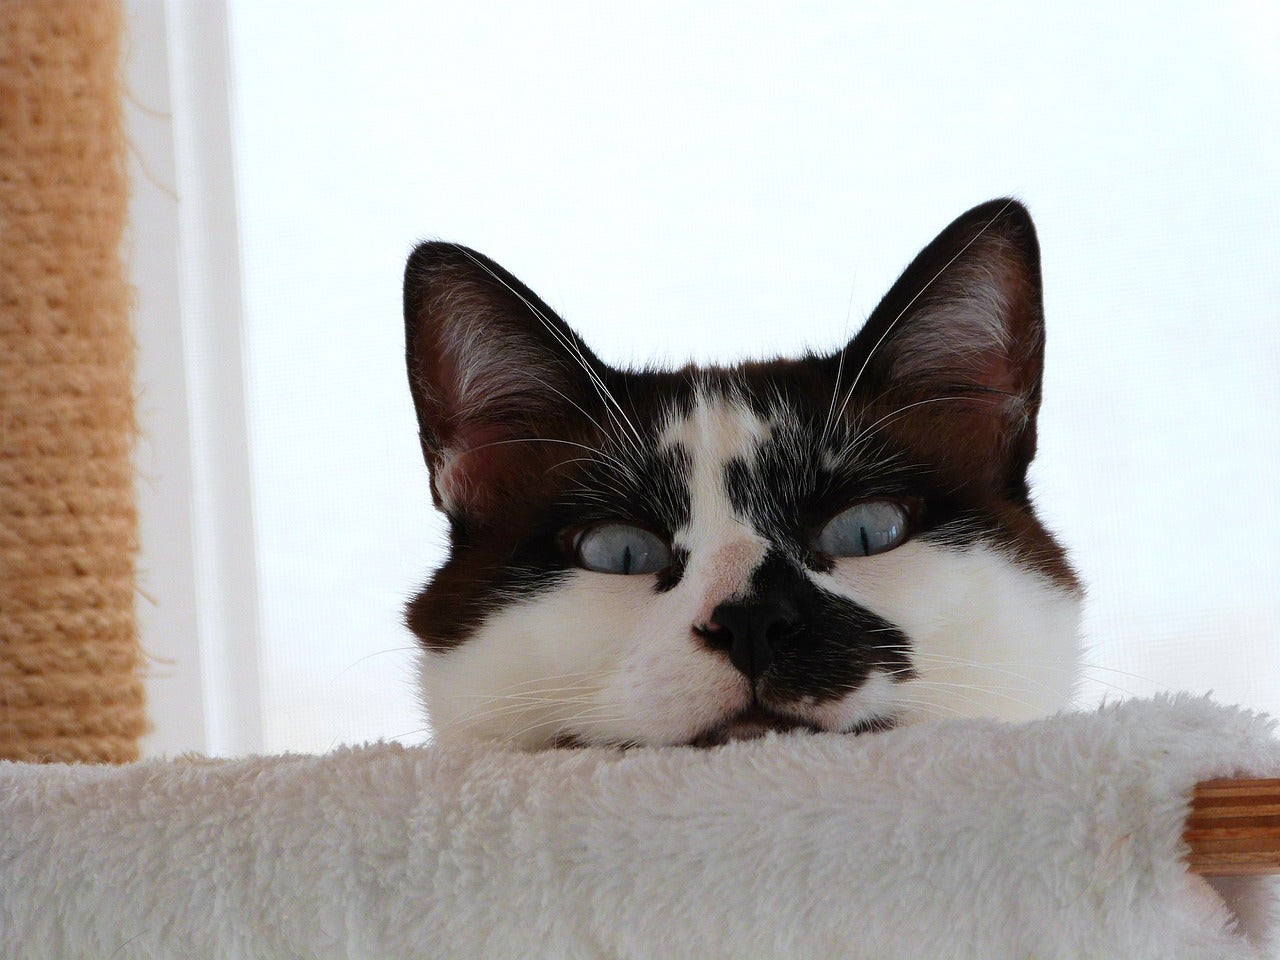 blood groups in cats: Cute black and white cat with blue eyes